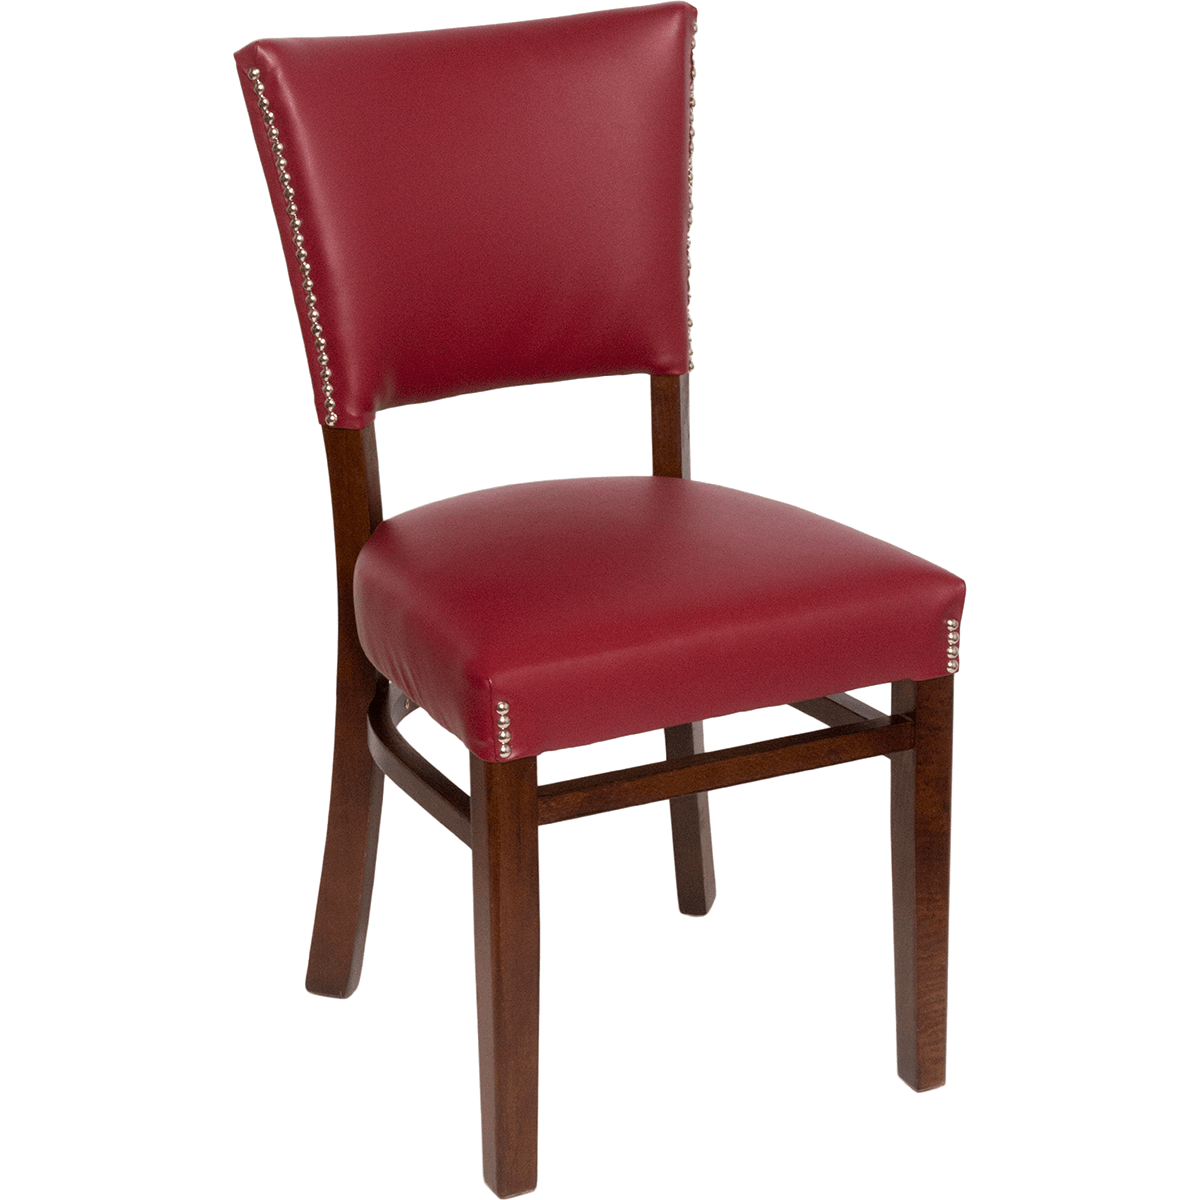 Chair Back Chairs Wood Upholstered Flared Pullover Back Chair